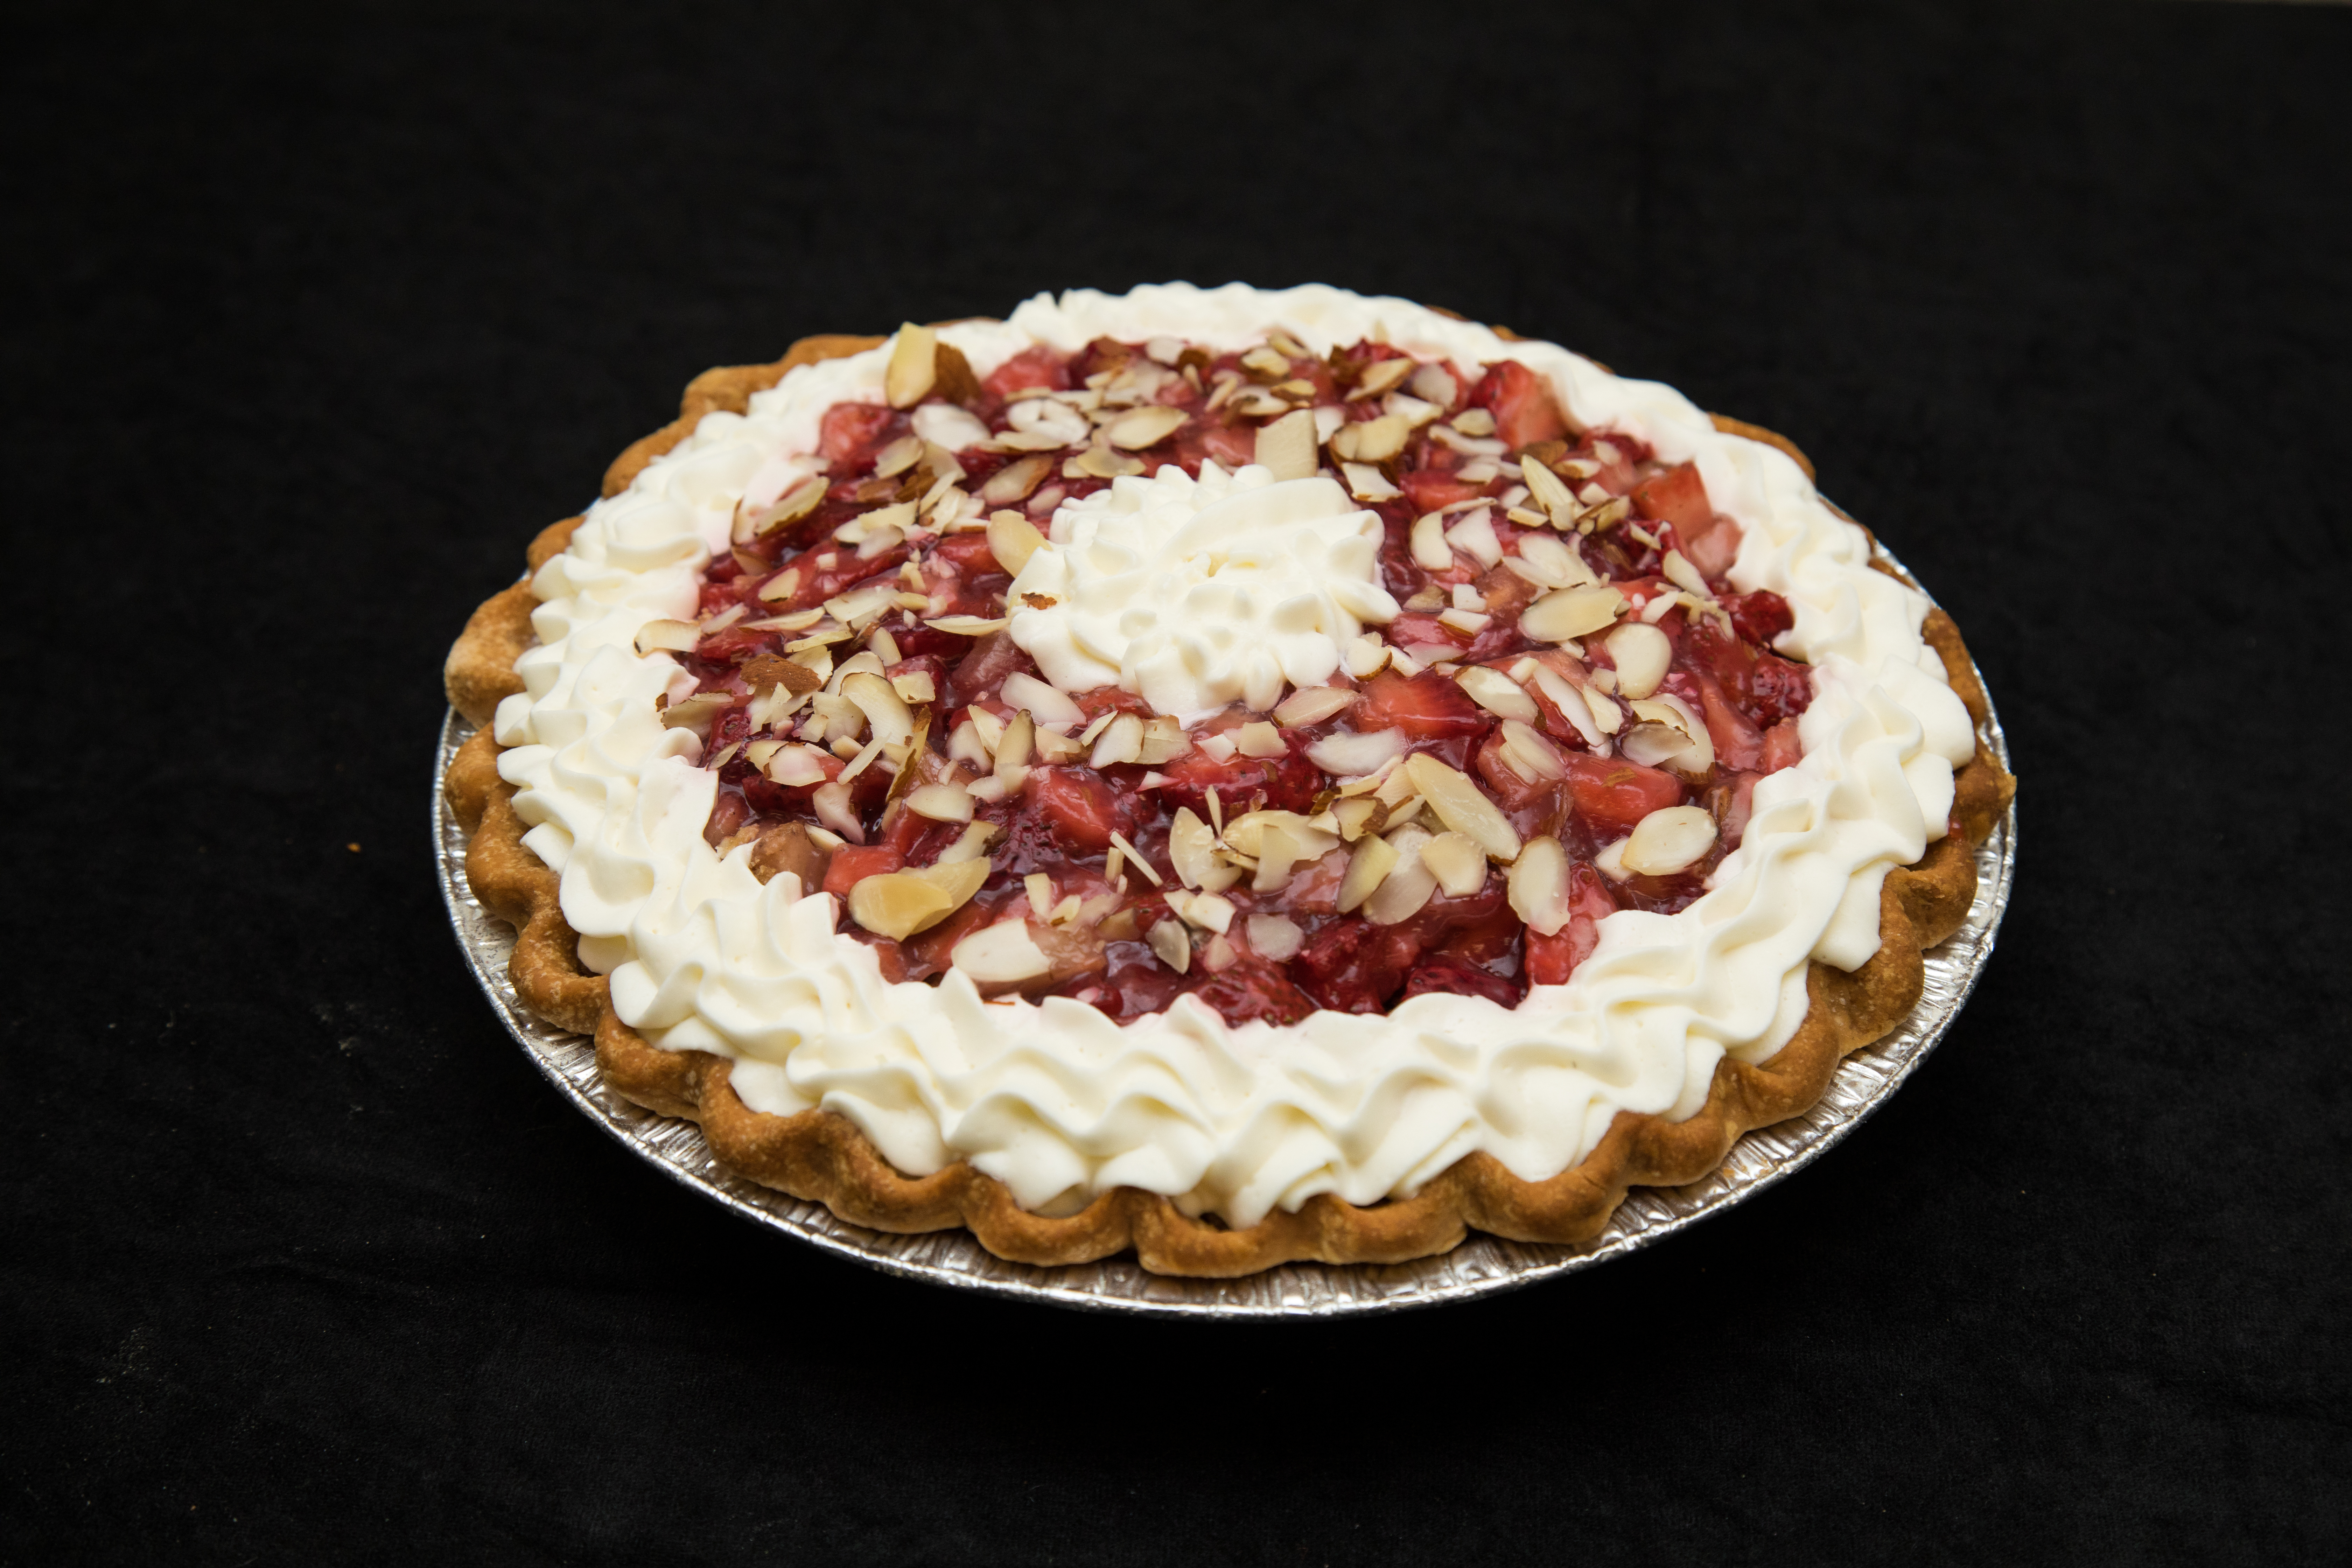 2019 1st Place Amateur Fruit/Berry Rhubarb Pie with a Strawberry Top, David Harper, Lone Rock, WI